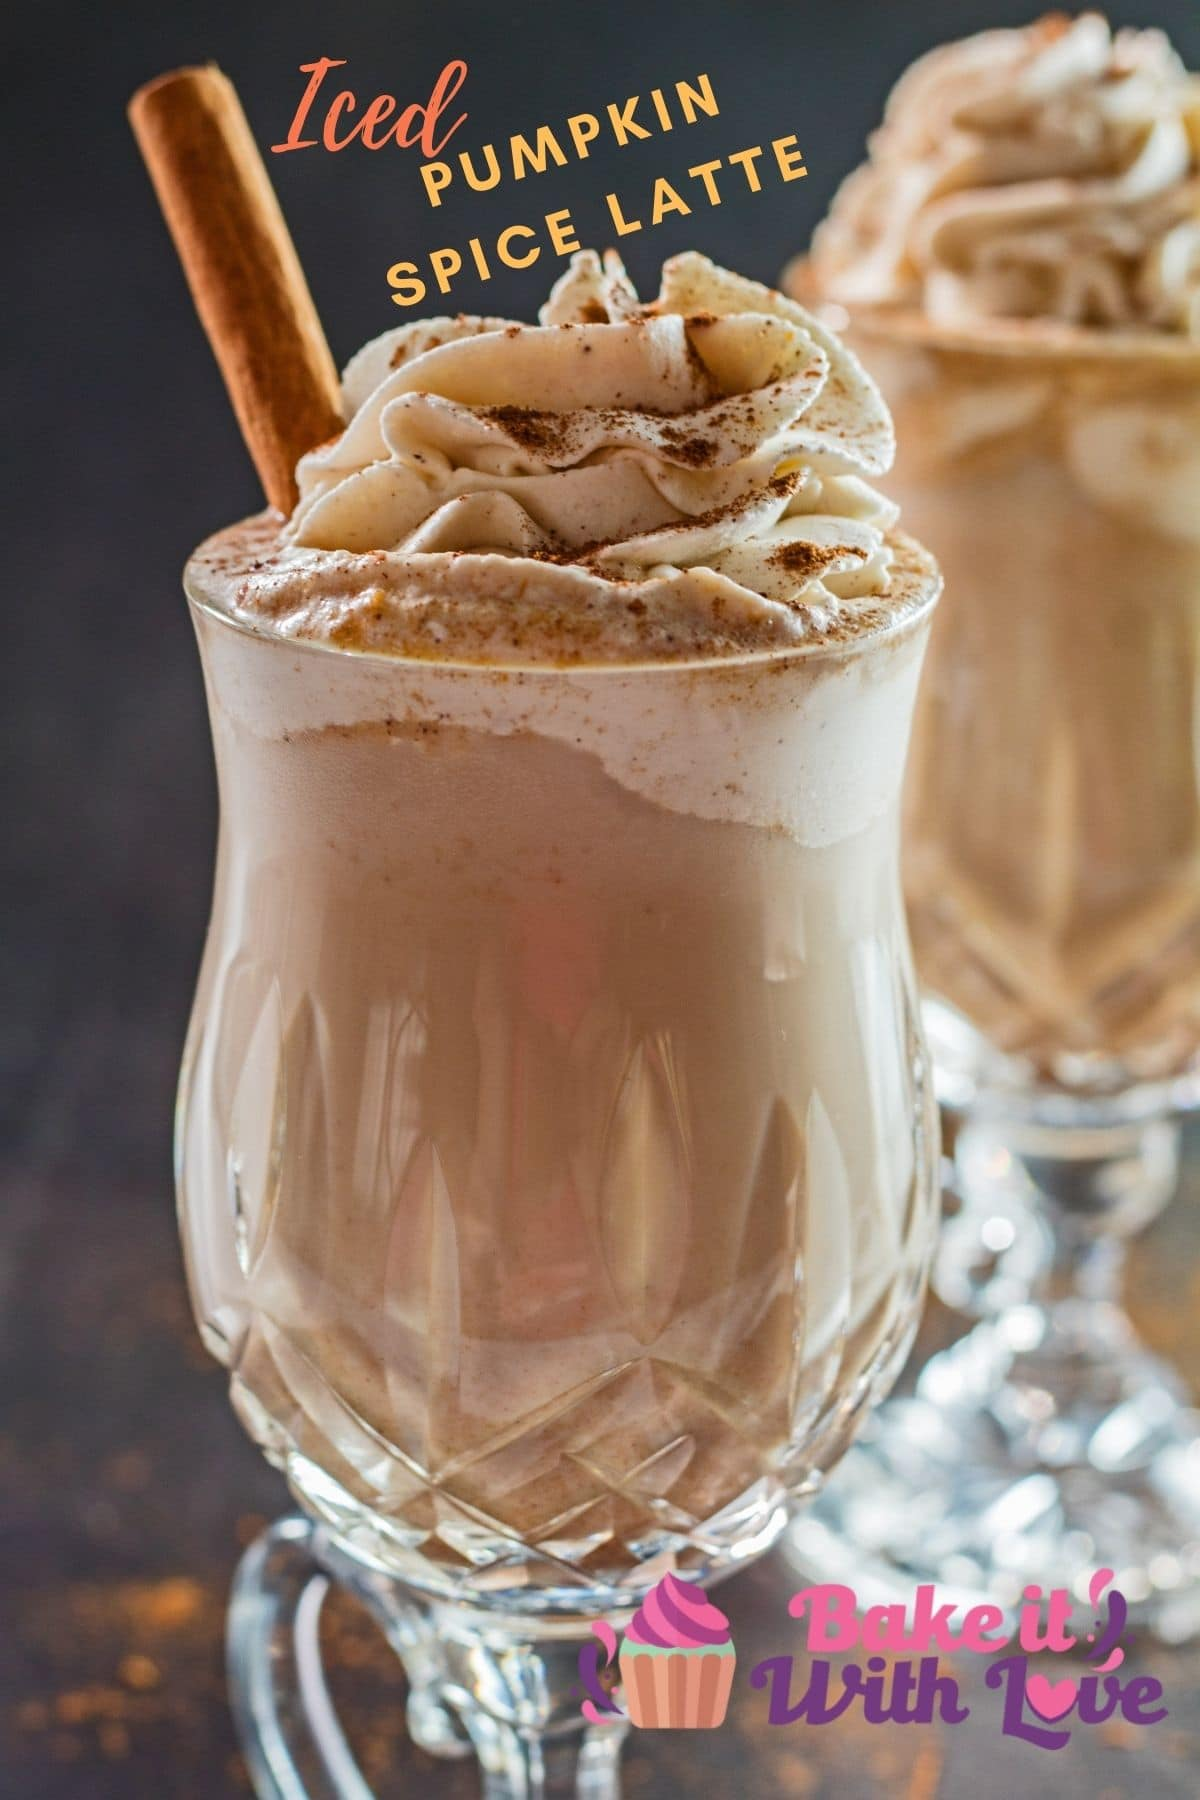 Closeup image of iced pumpkin spice latte with whipped cream.